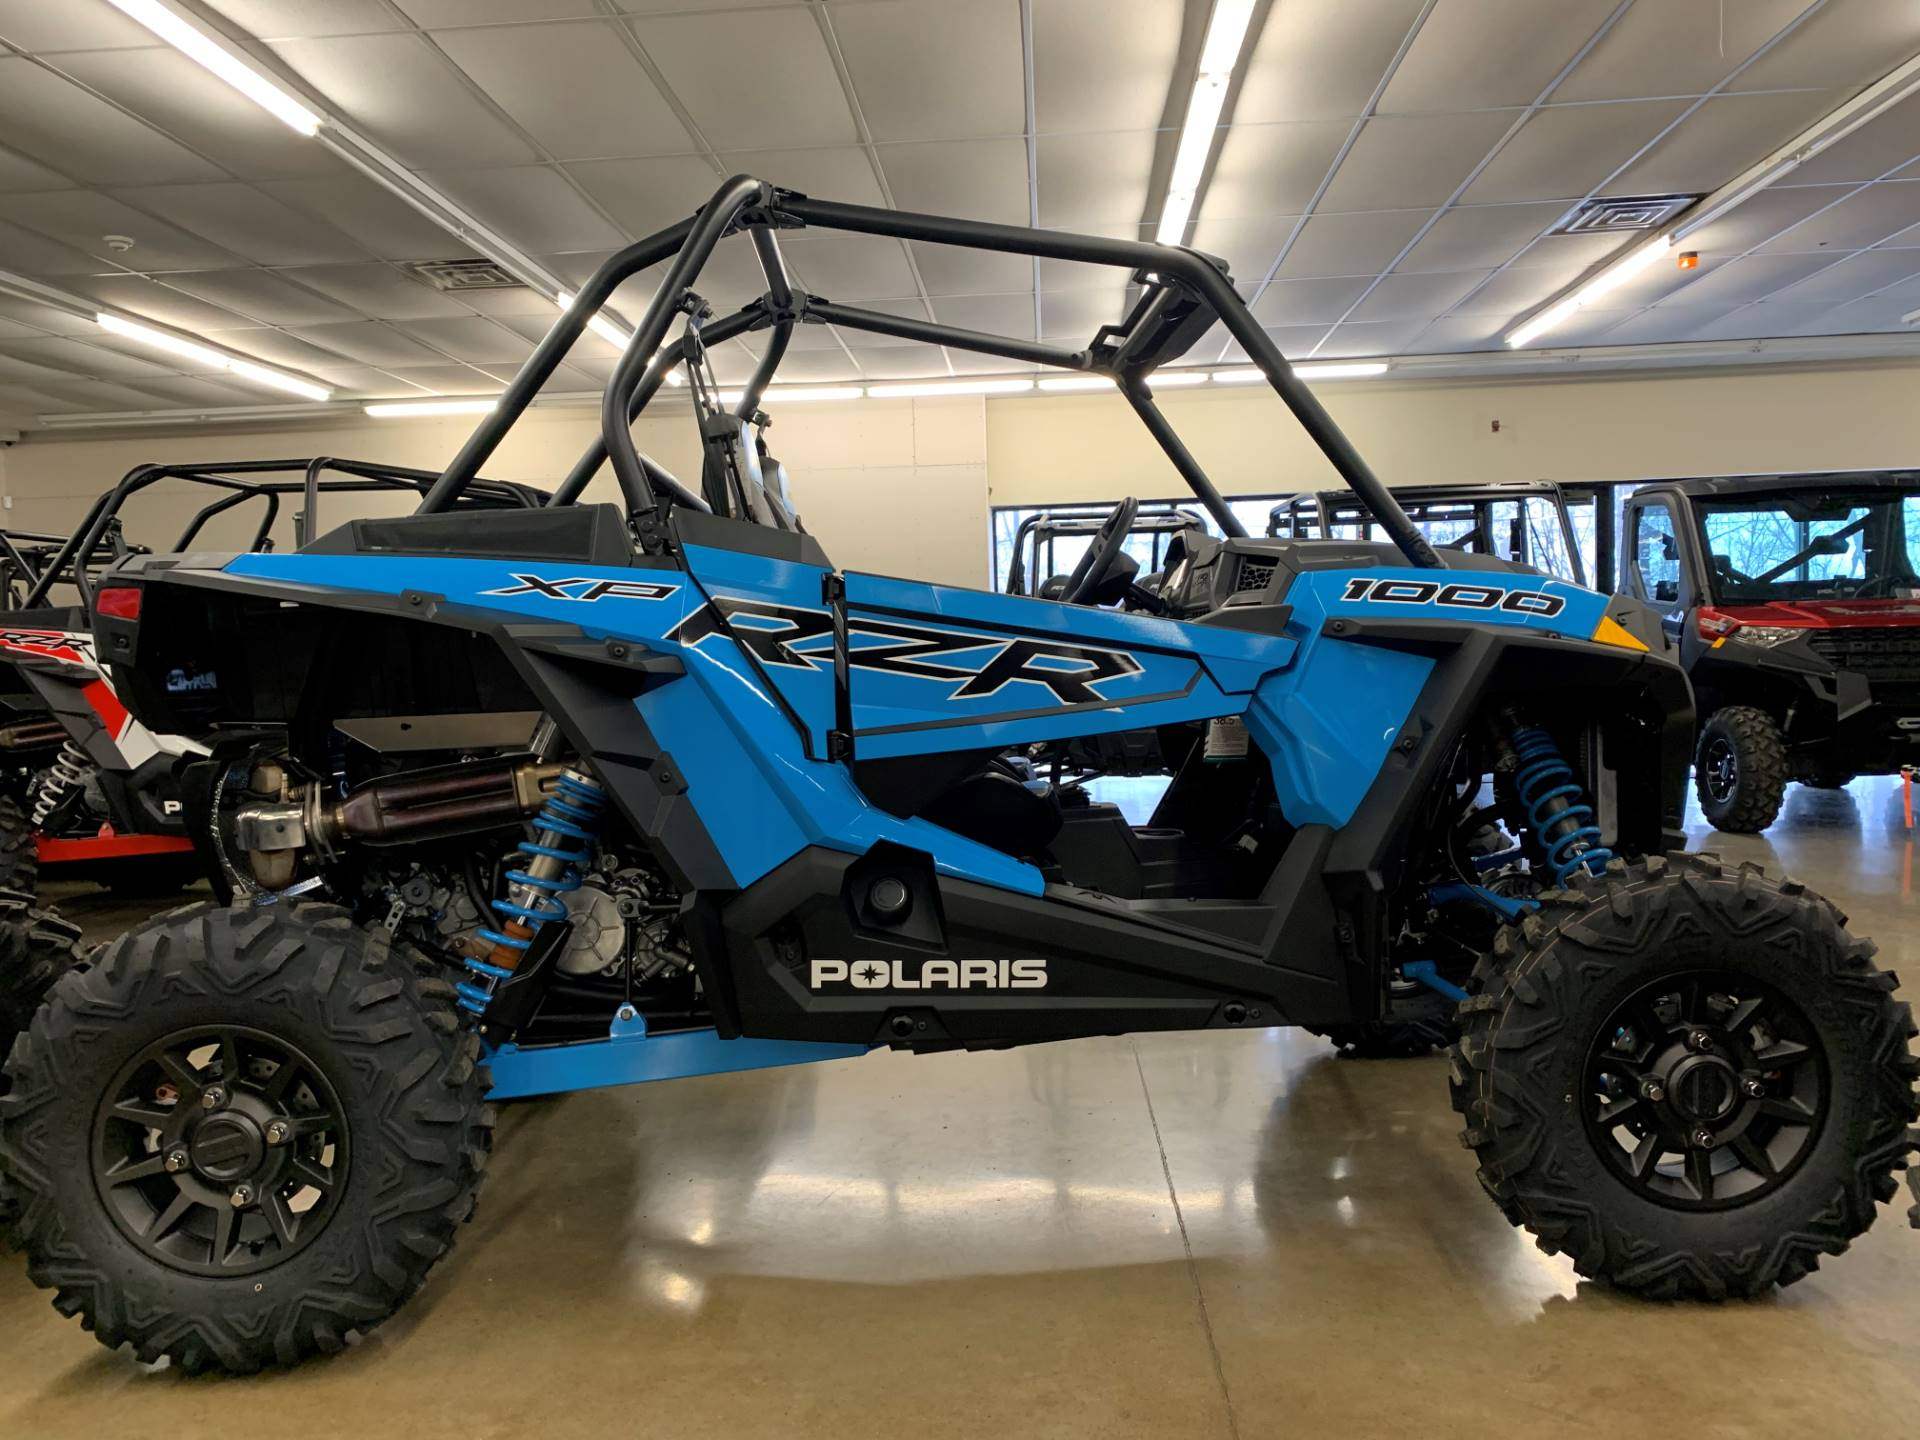 2020 Polaris RZR XP 1000 in Coraopolis, Pennsylvania - Photo 1